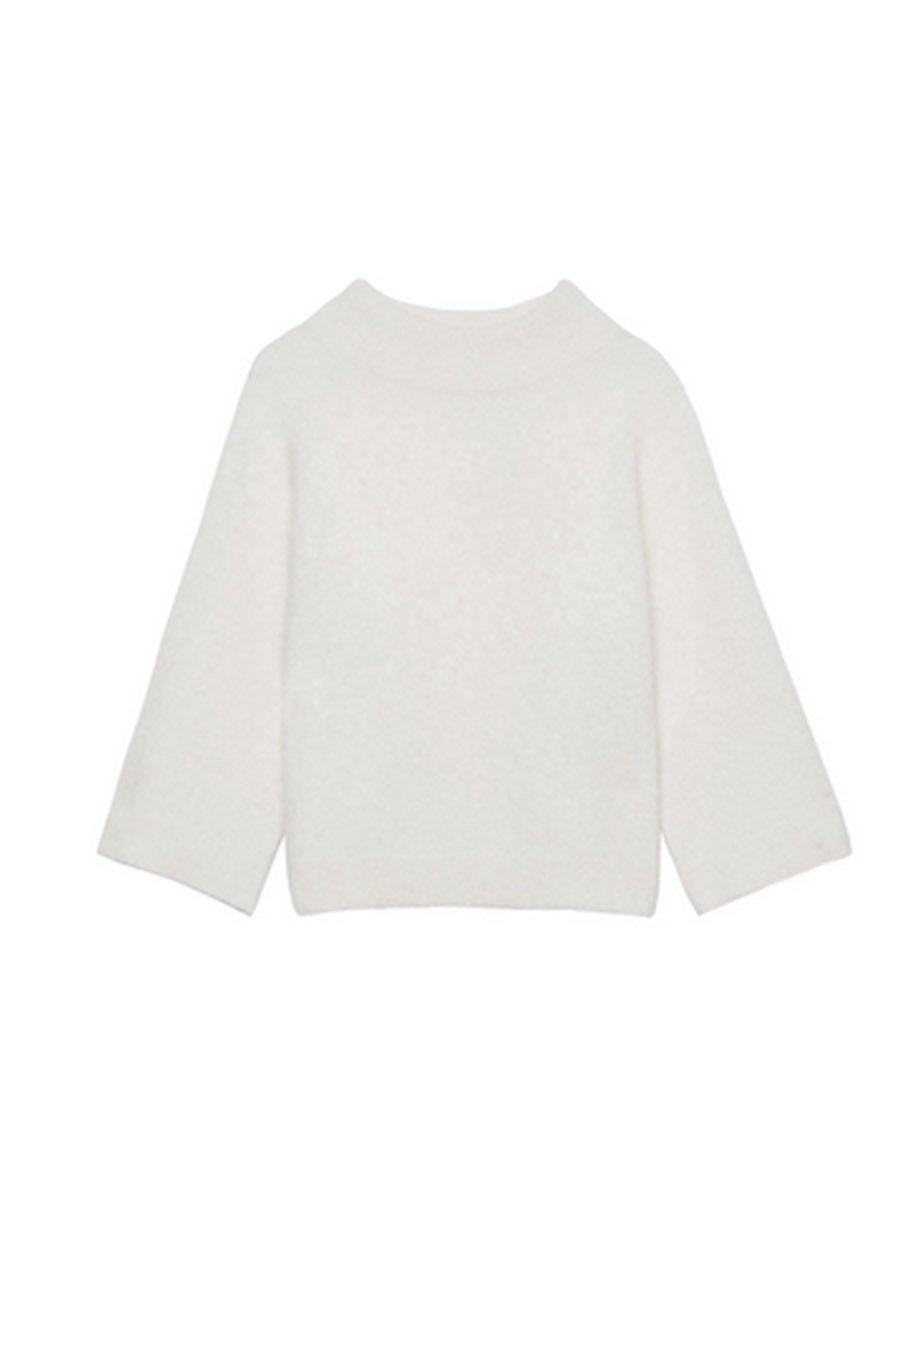 ELITA SWEATER - WHITE Sweater Stylein